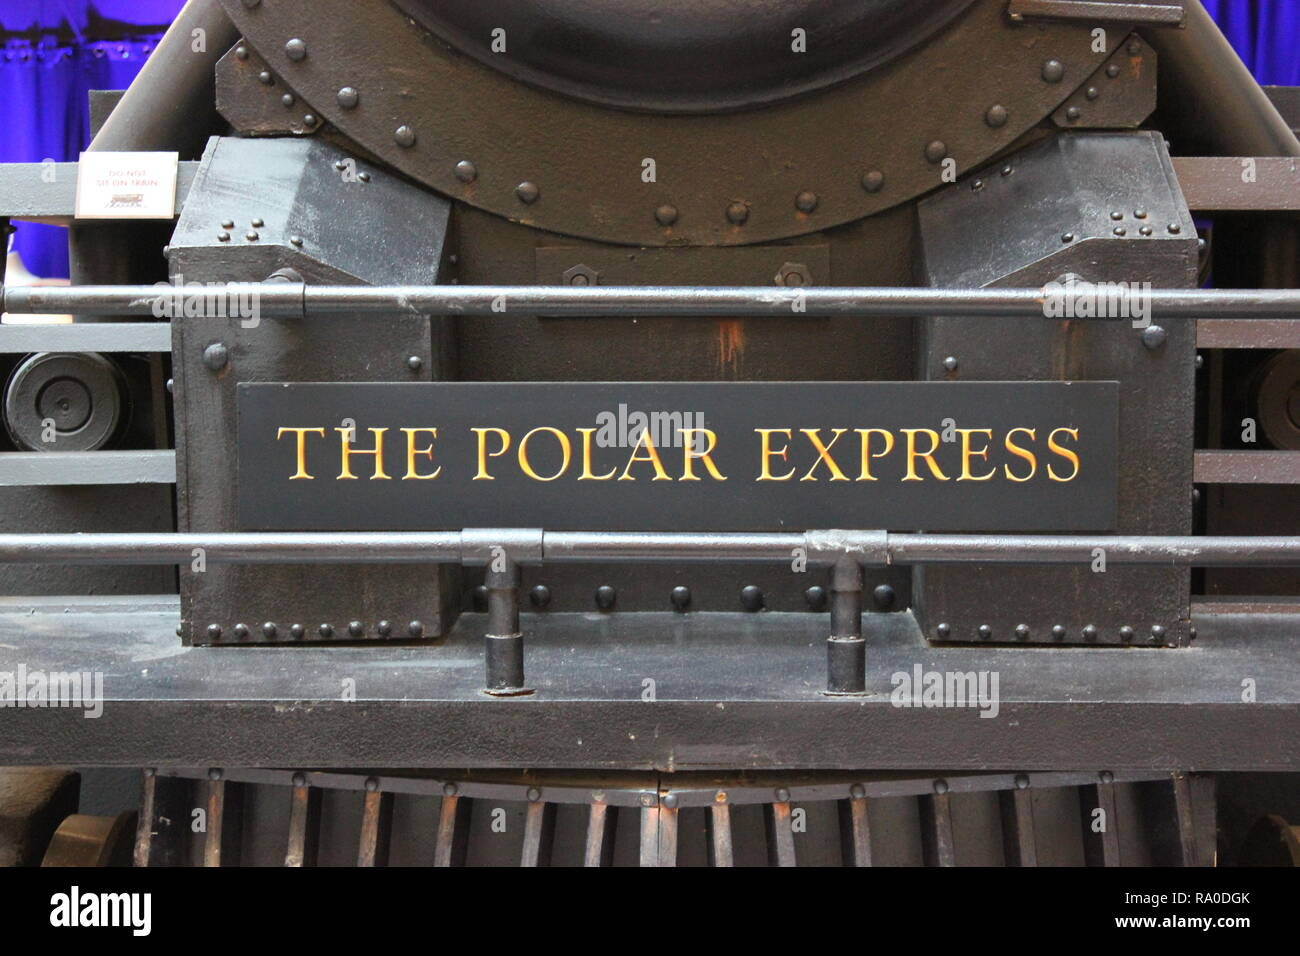 The Polar Express, Pere Marquette #1225, steam train engine locomotive as Christmas decorations at Union Station, a major transportation hub in Chicago, Illinois. - Stock Image